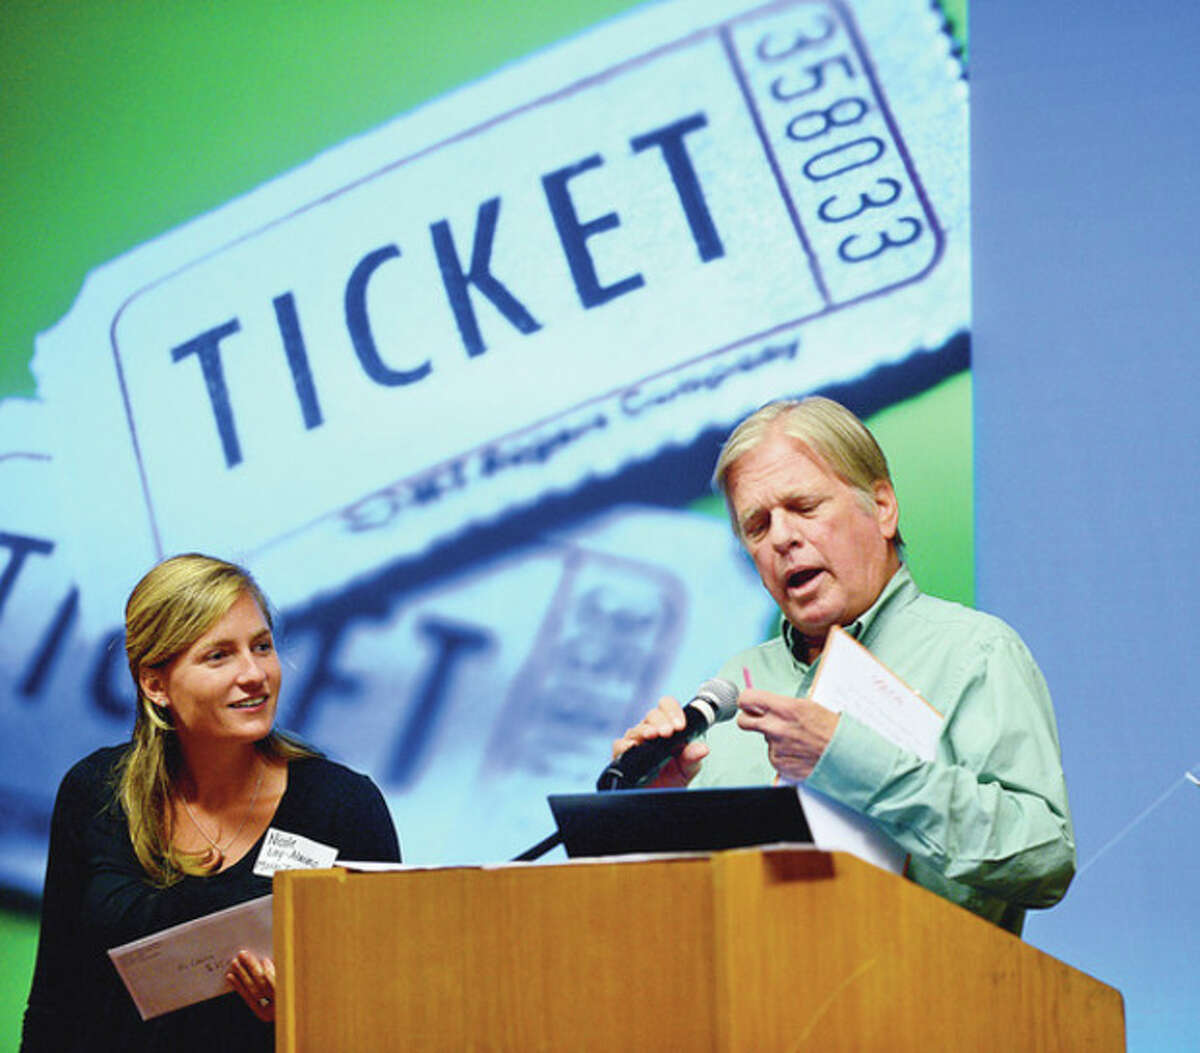 Briggs High School faculty Nicole Lay-Alaimo and Michael May draw raffle tickets at the culmination lunch for the faculty's retreat at Dolce Friday. Hour photo / Erik Trautmann